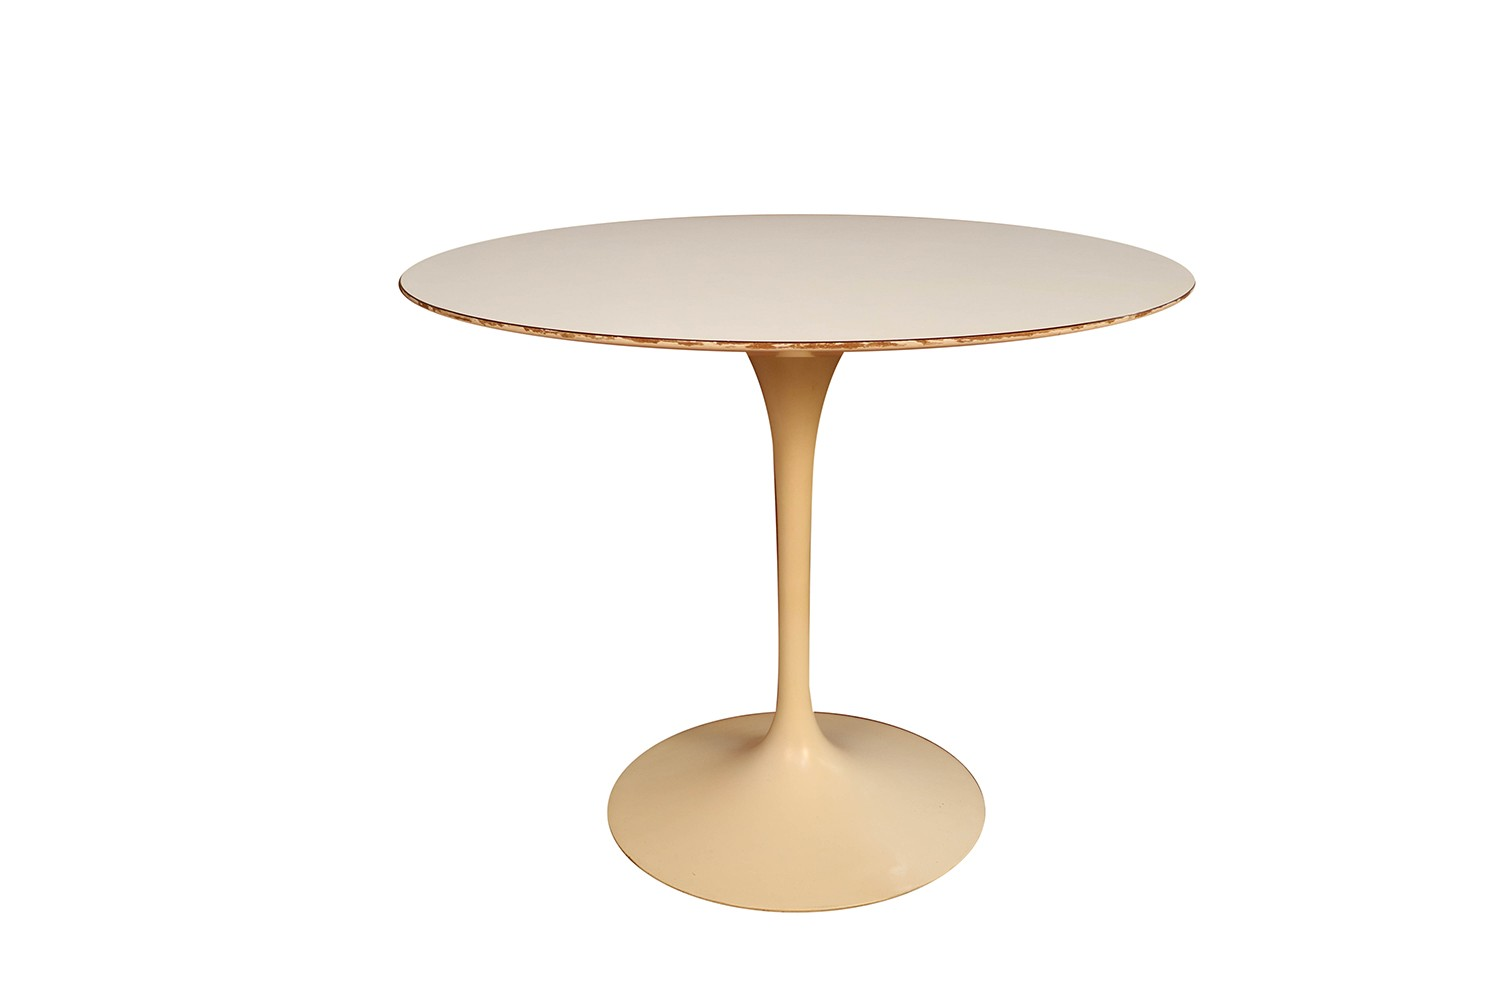 Early Knoll Mid Century Vintage Round Saarinen Tulip Table